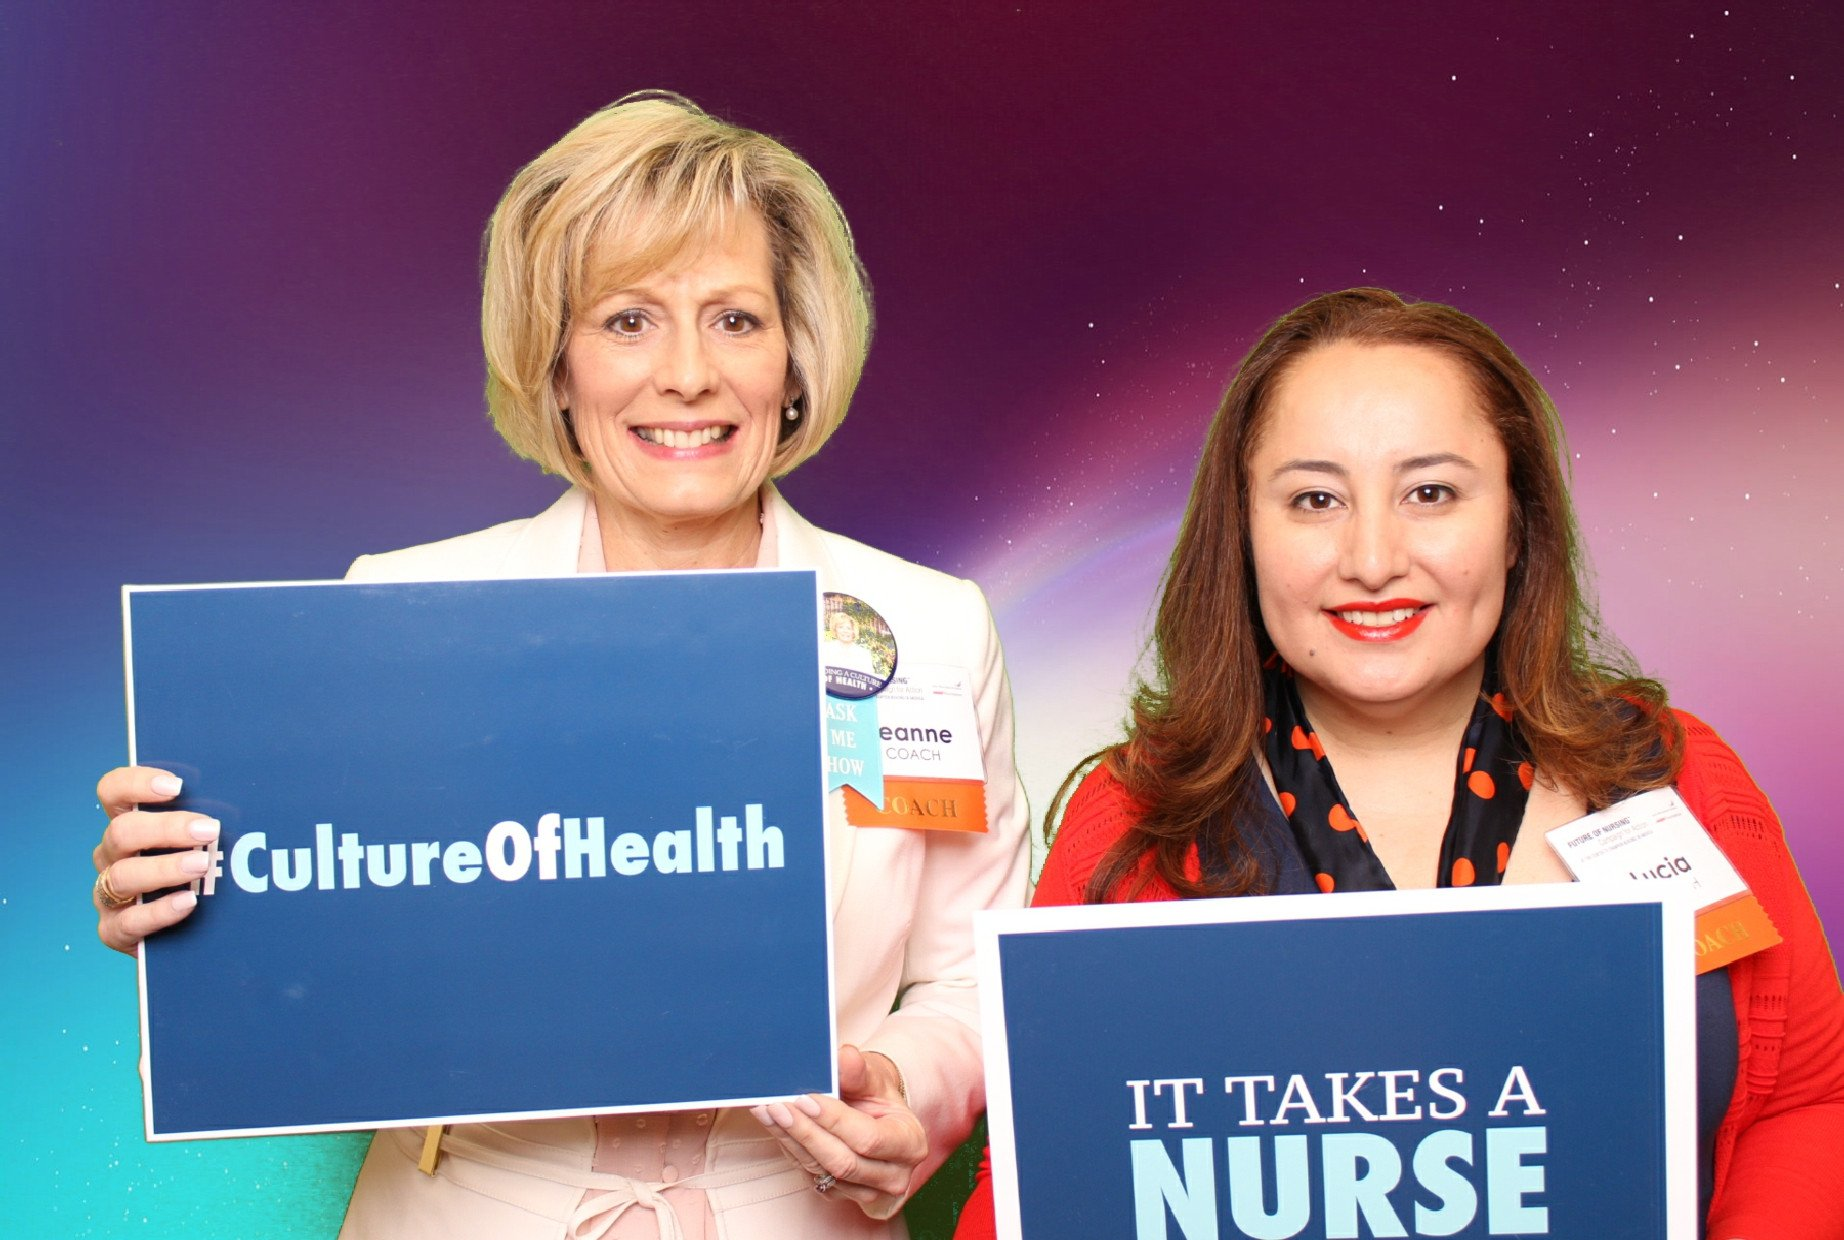 #FutureofNursing #CultureofHealth Nursing leaders working together to improve health in our nation! https://t.co/hhKog6AQOl